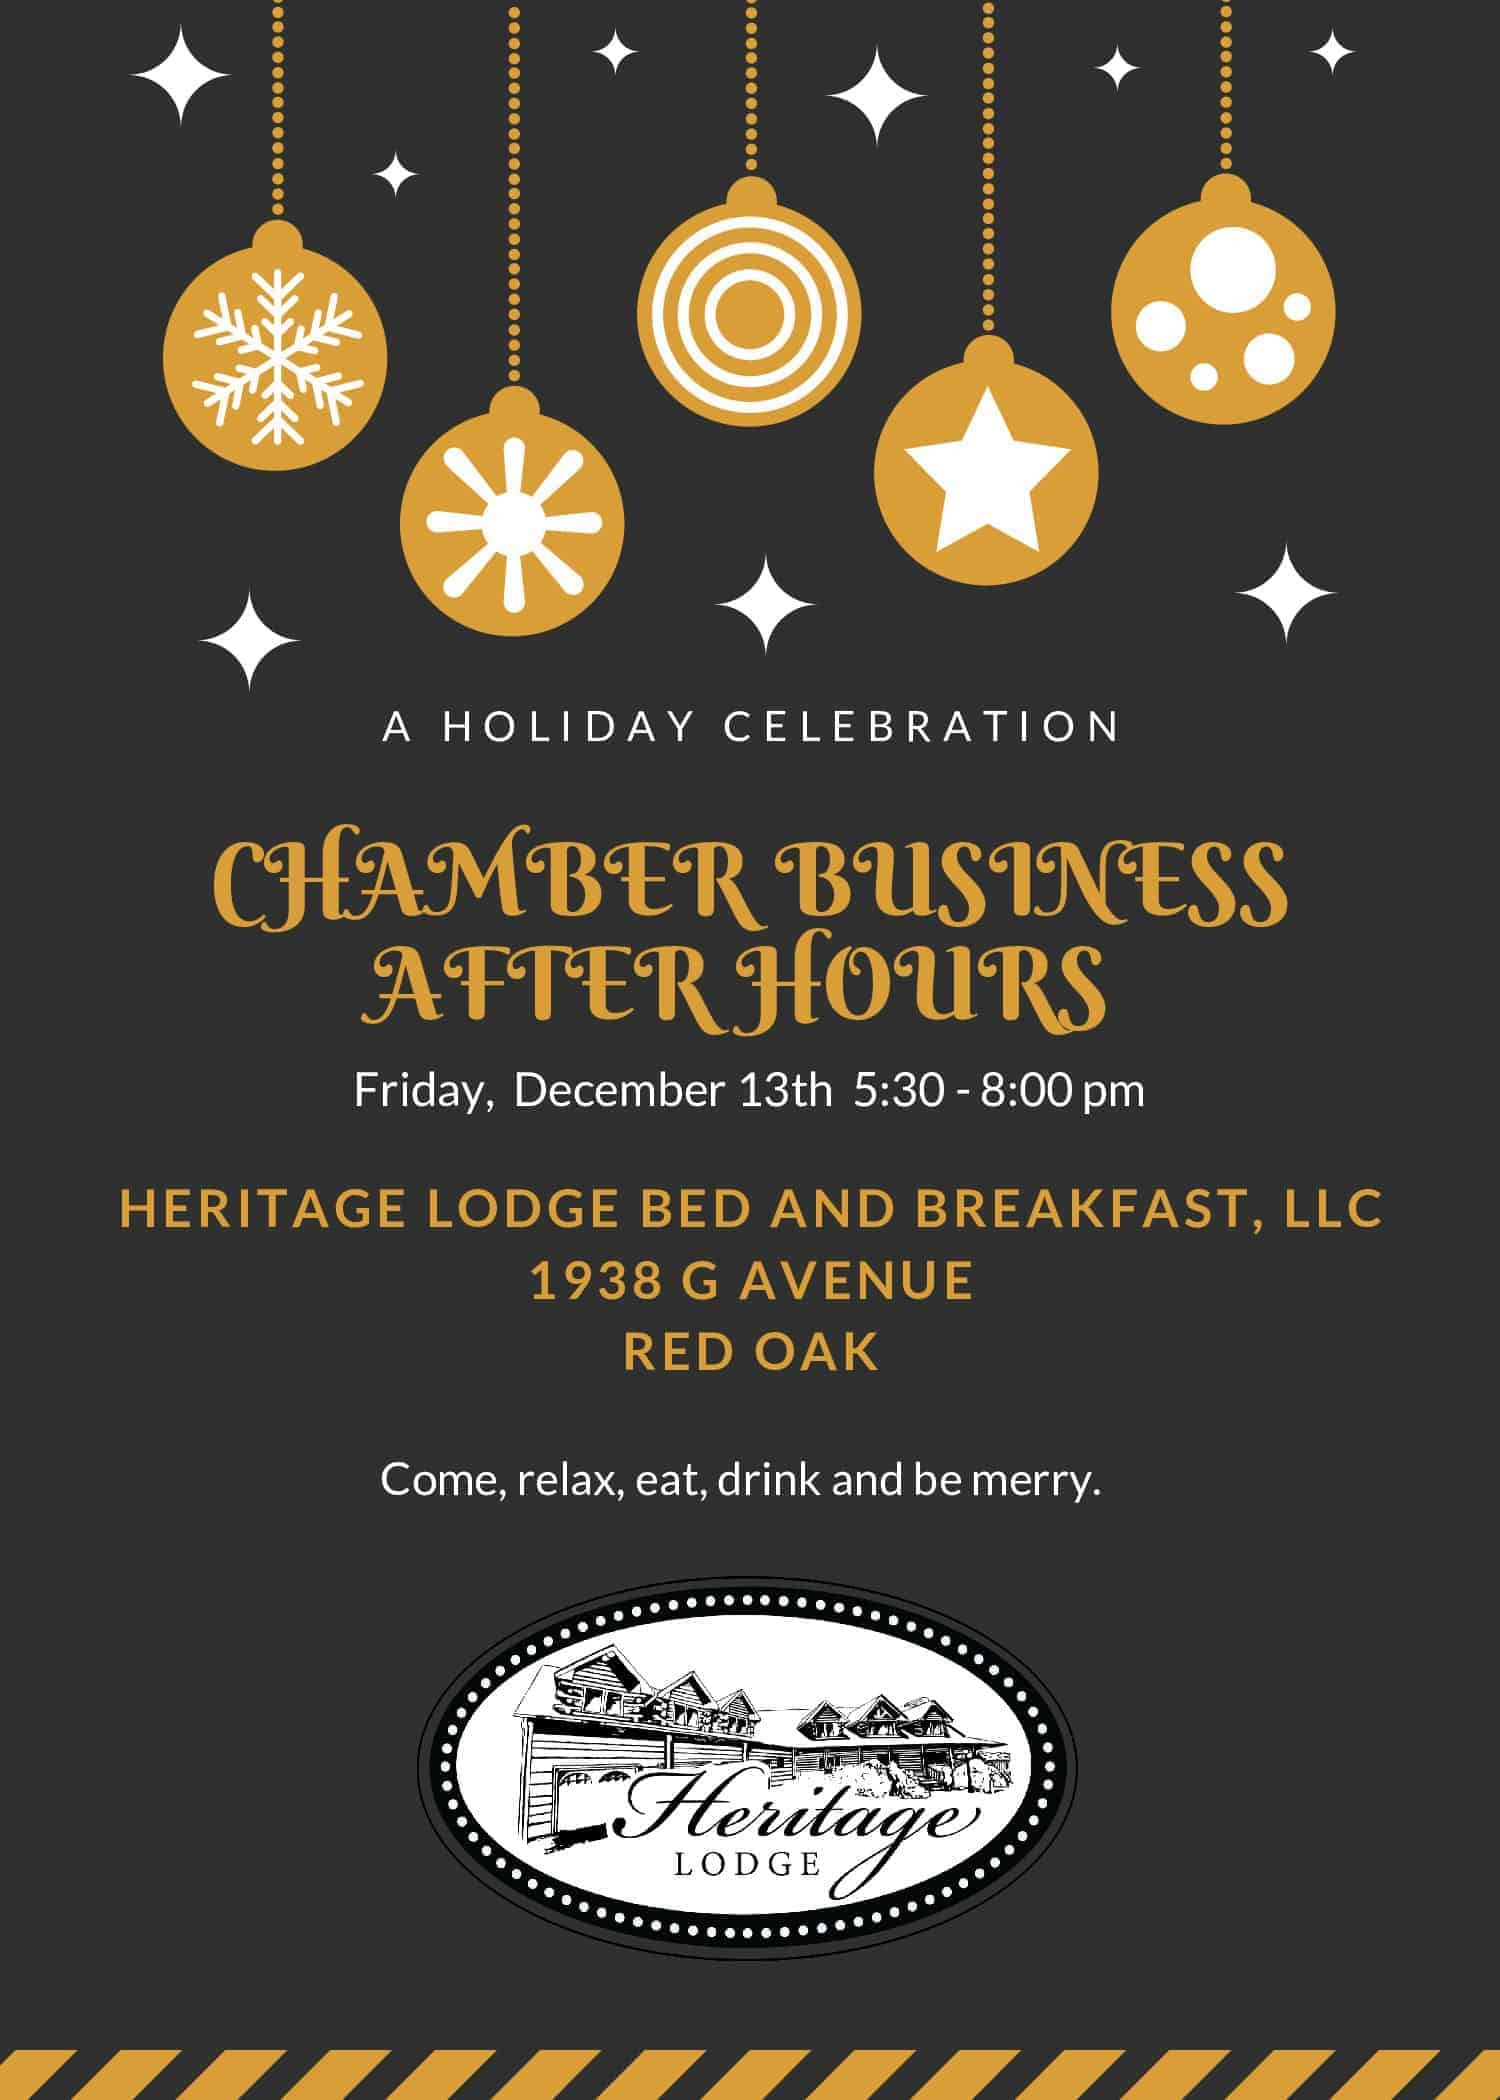 Business After Hours, Heritage Lodge